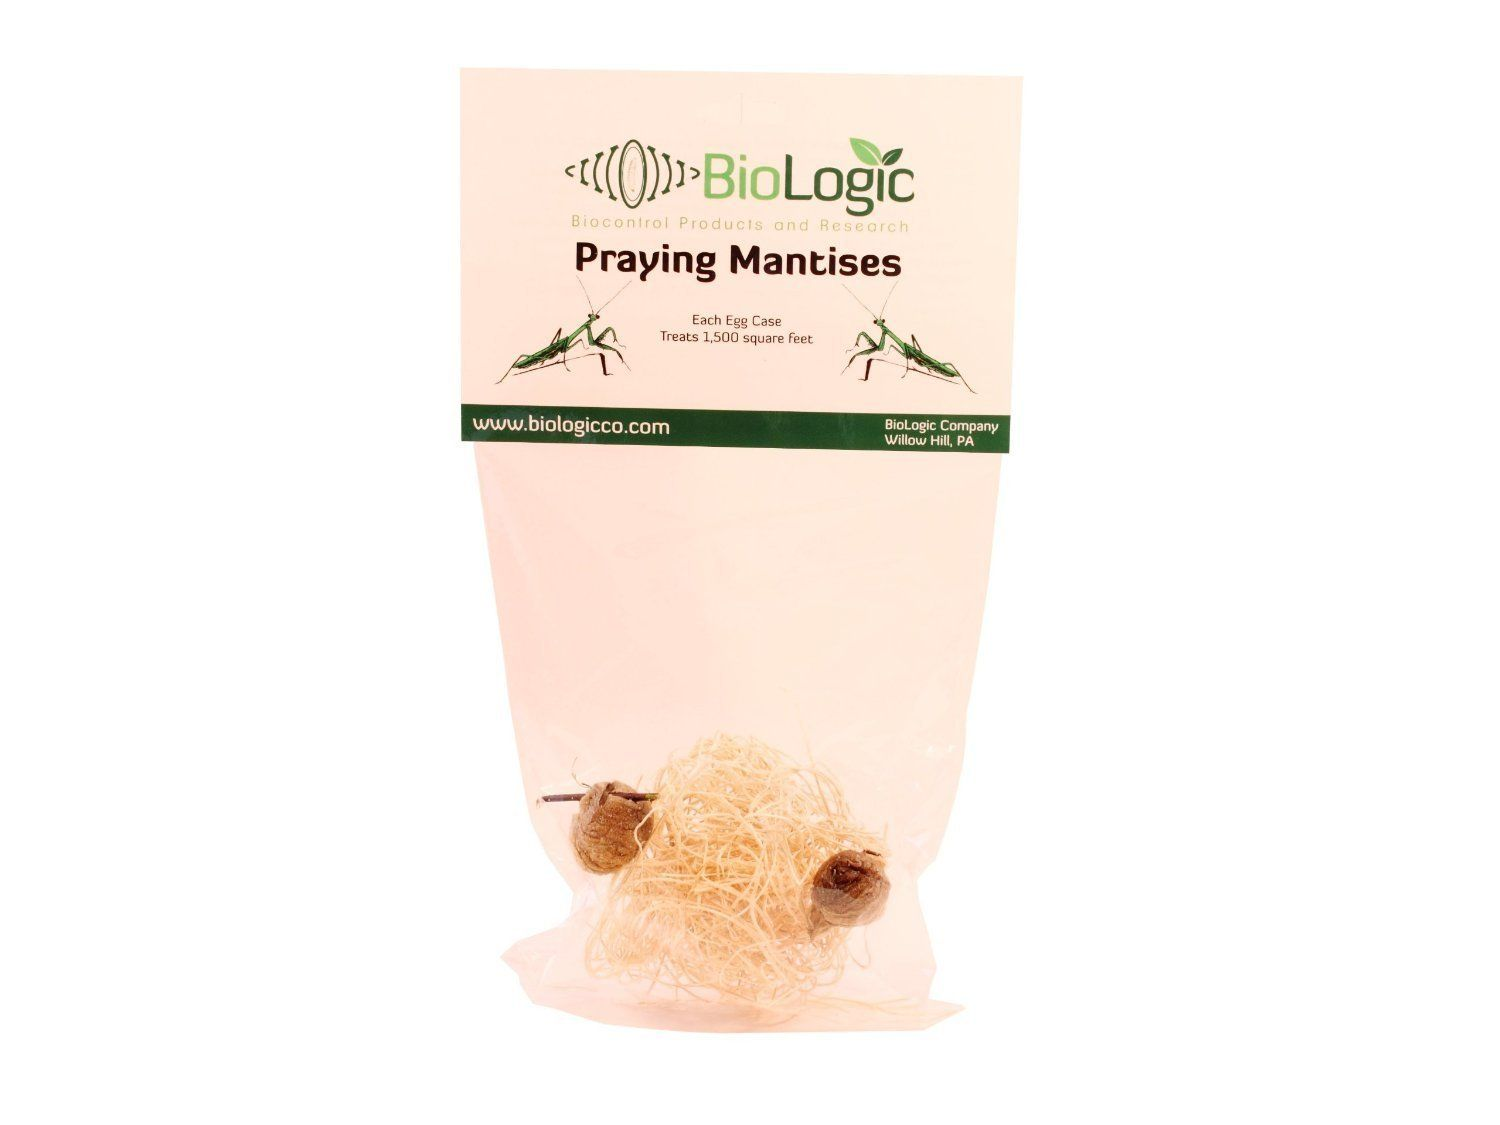 Amazonsmile Praying Mantis Egg Cases 2 Extra Large Cases Pest Controlling Insects Patio Lawn Amp Garden Pray Praying Mantis Candle S